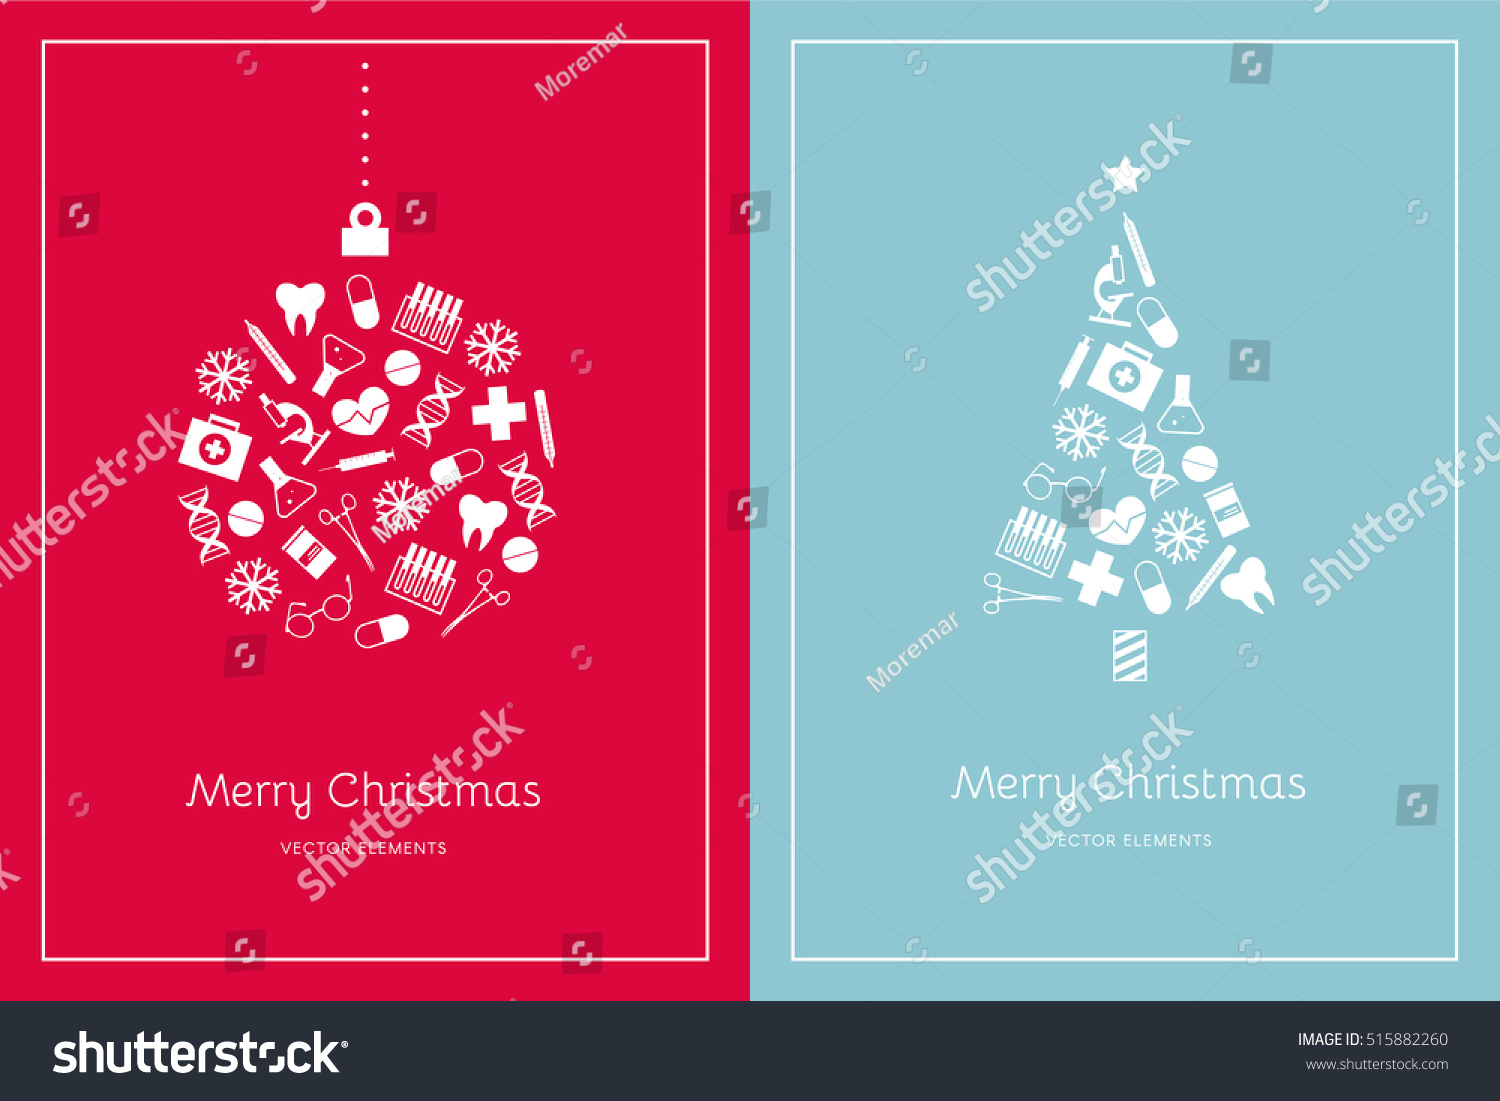 Two Christmas Cards On Red Light Stock Vector 515882260 - Shutterstock